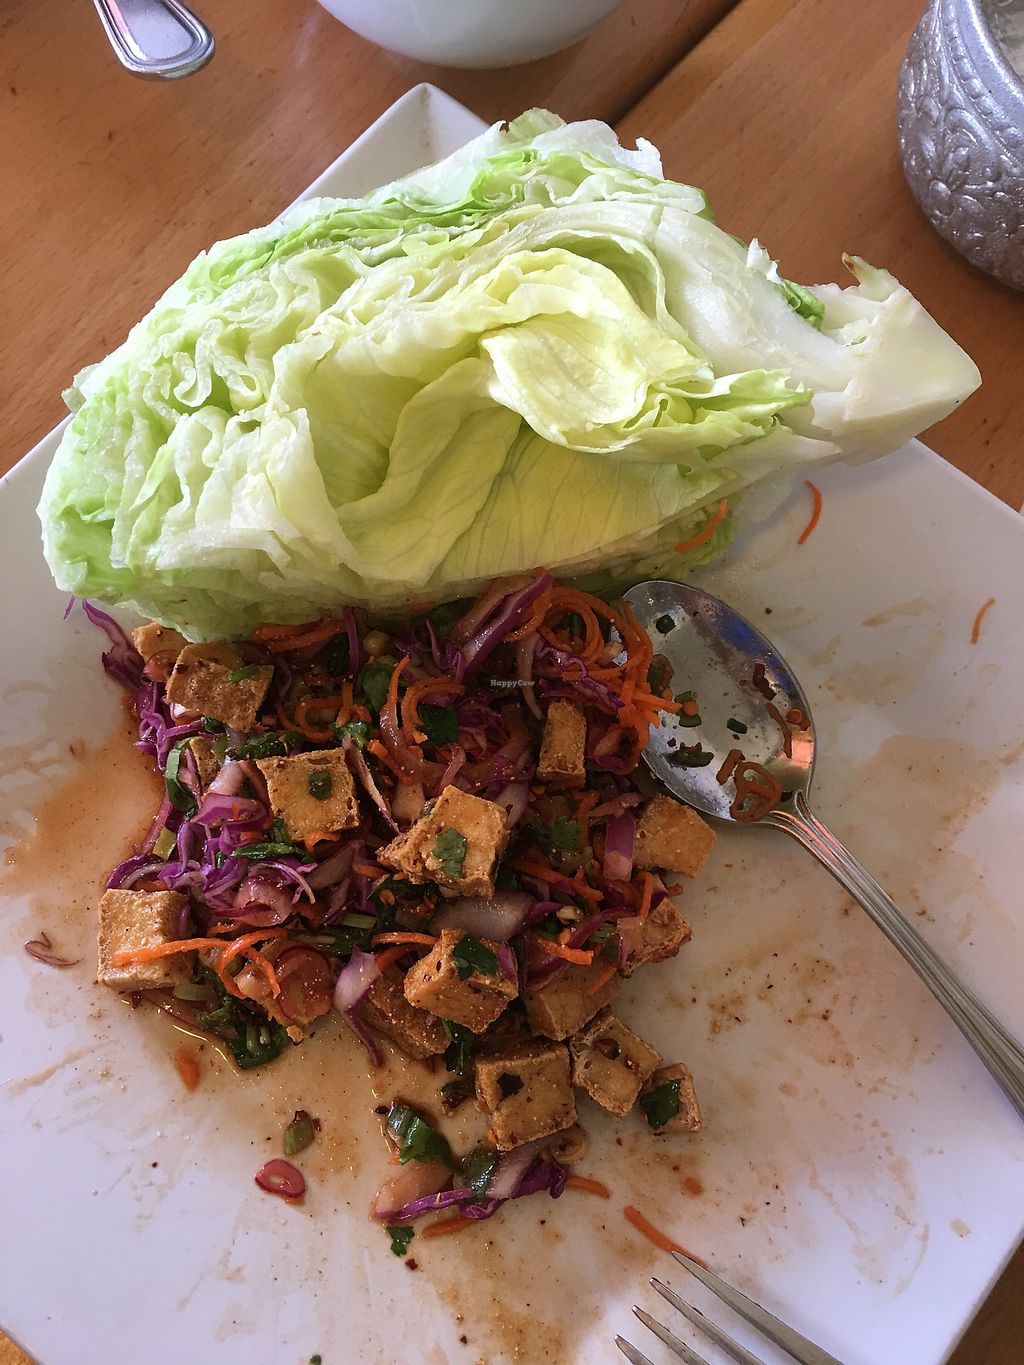 "Photo of Opal Thai  by <a href=""/members/profile/JessicaHolmes"">JessicaHolmes</a> <br/>Spicy radish ""polenta"" slaw with lettuce wedge <br/> September 10, 2017  - <a href='/contact/abuse/image/29883/302778'>Report</a>"